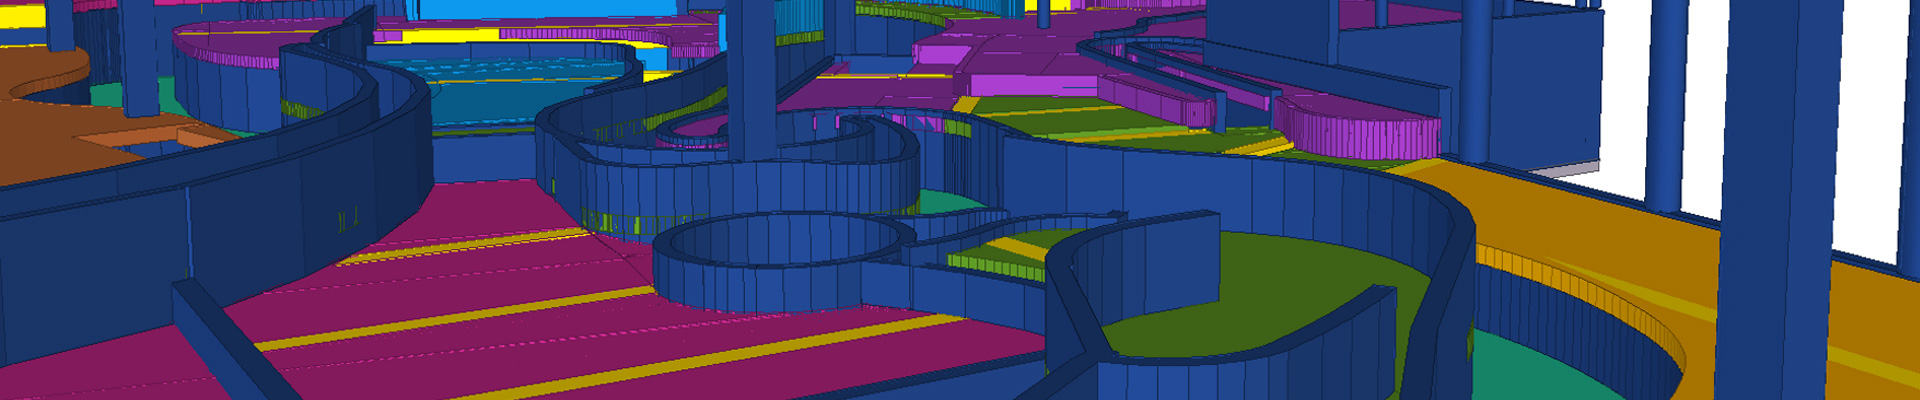 Structural Design Services | Structural Engineering Design